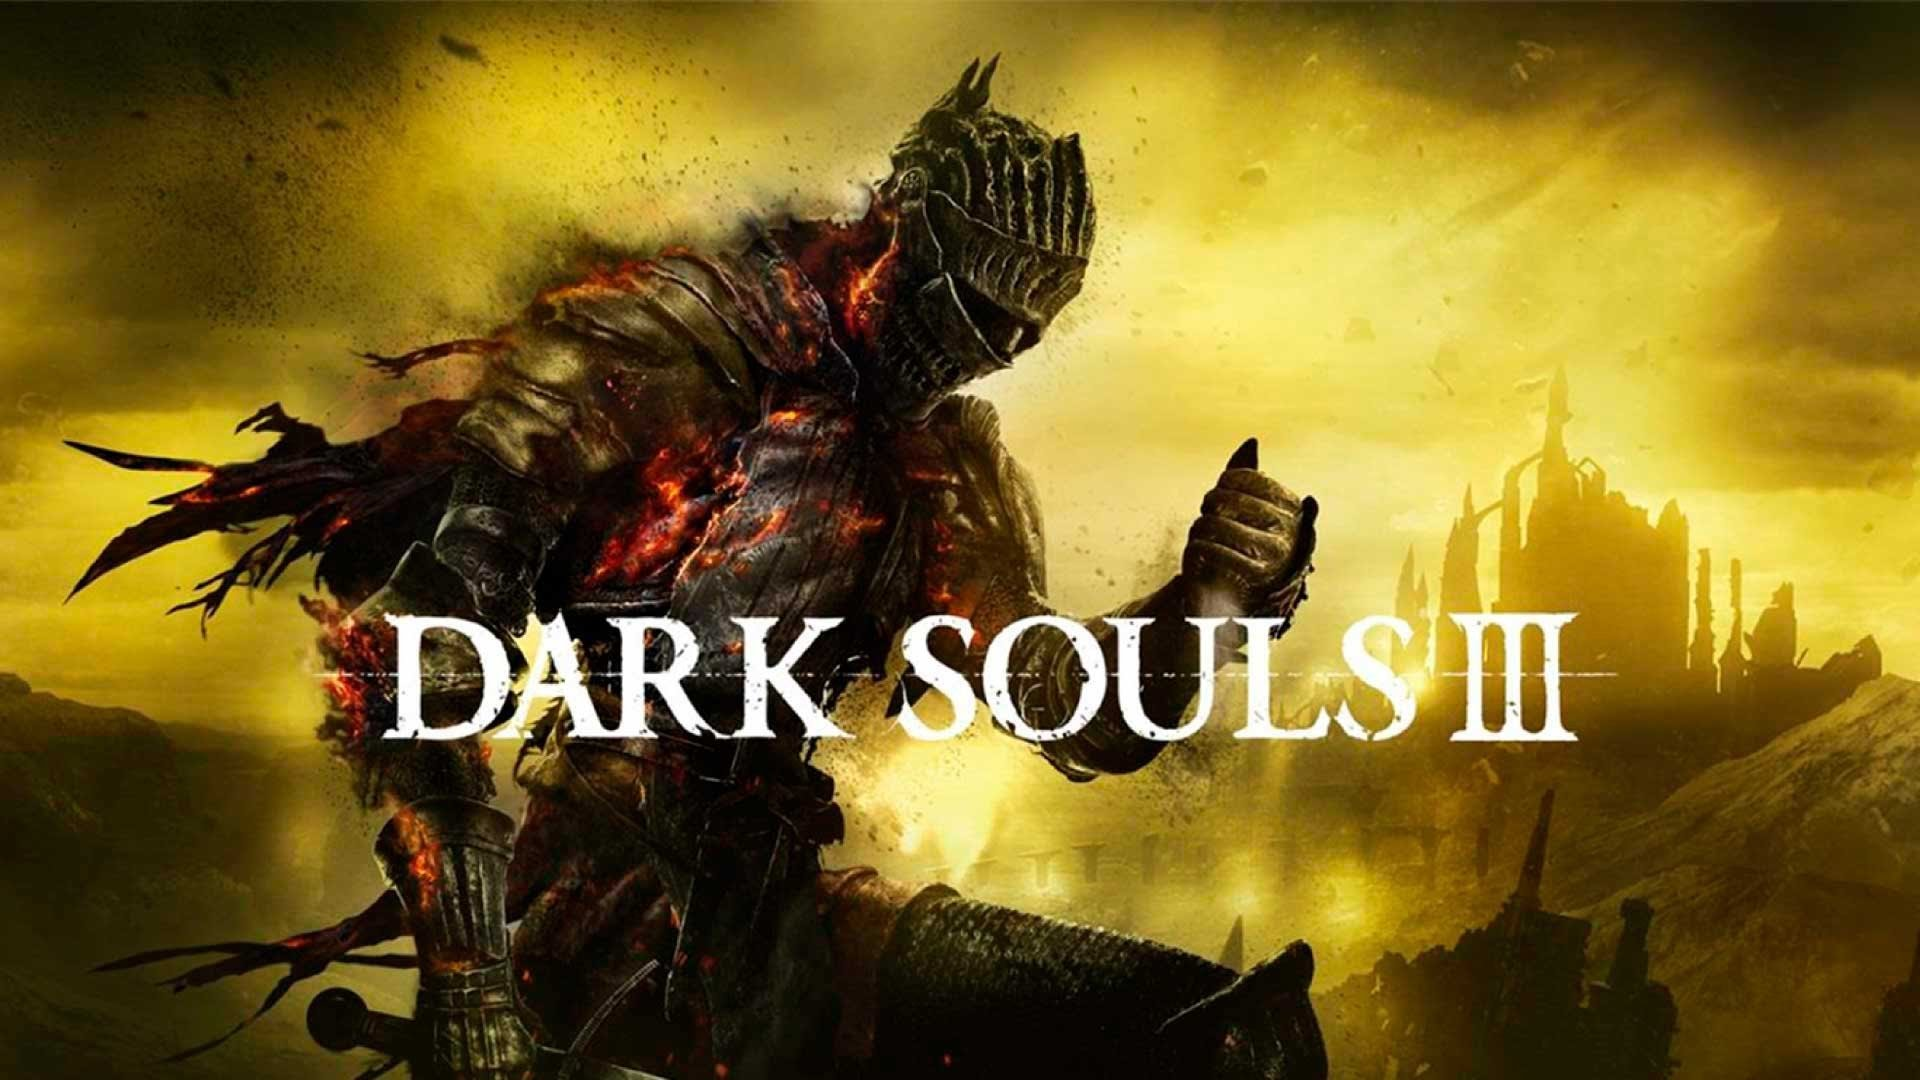 dark souls 3 wallpapers, 1920x1080 wallpaper dark souls